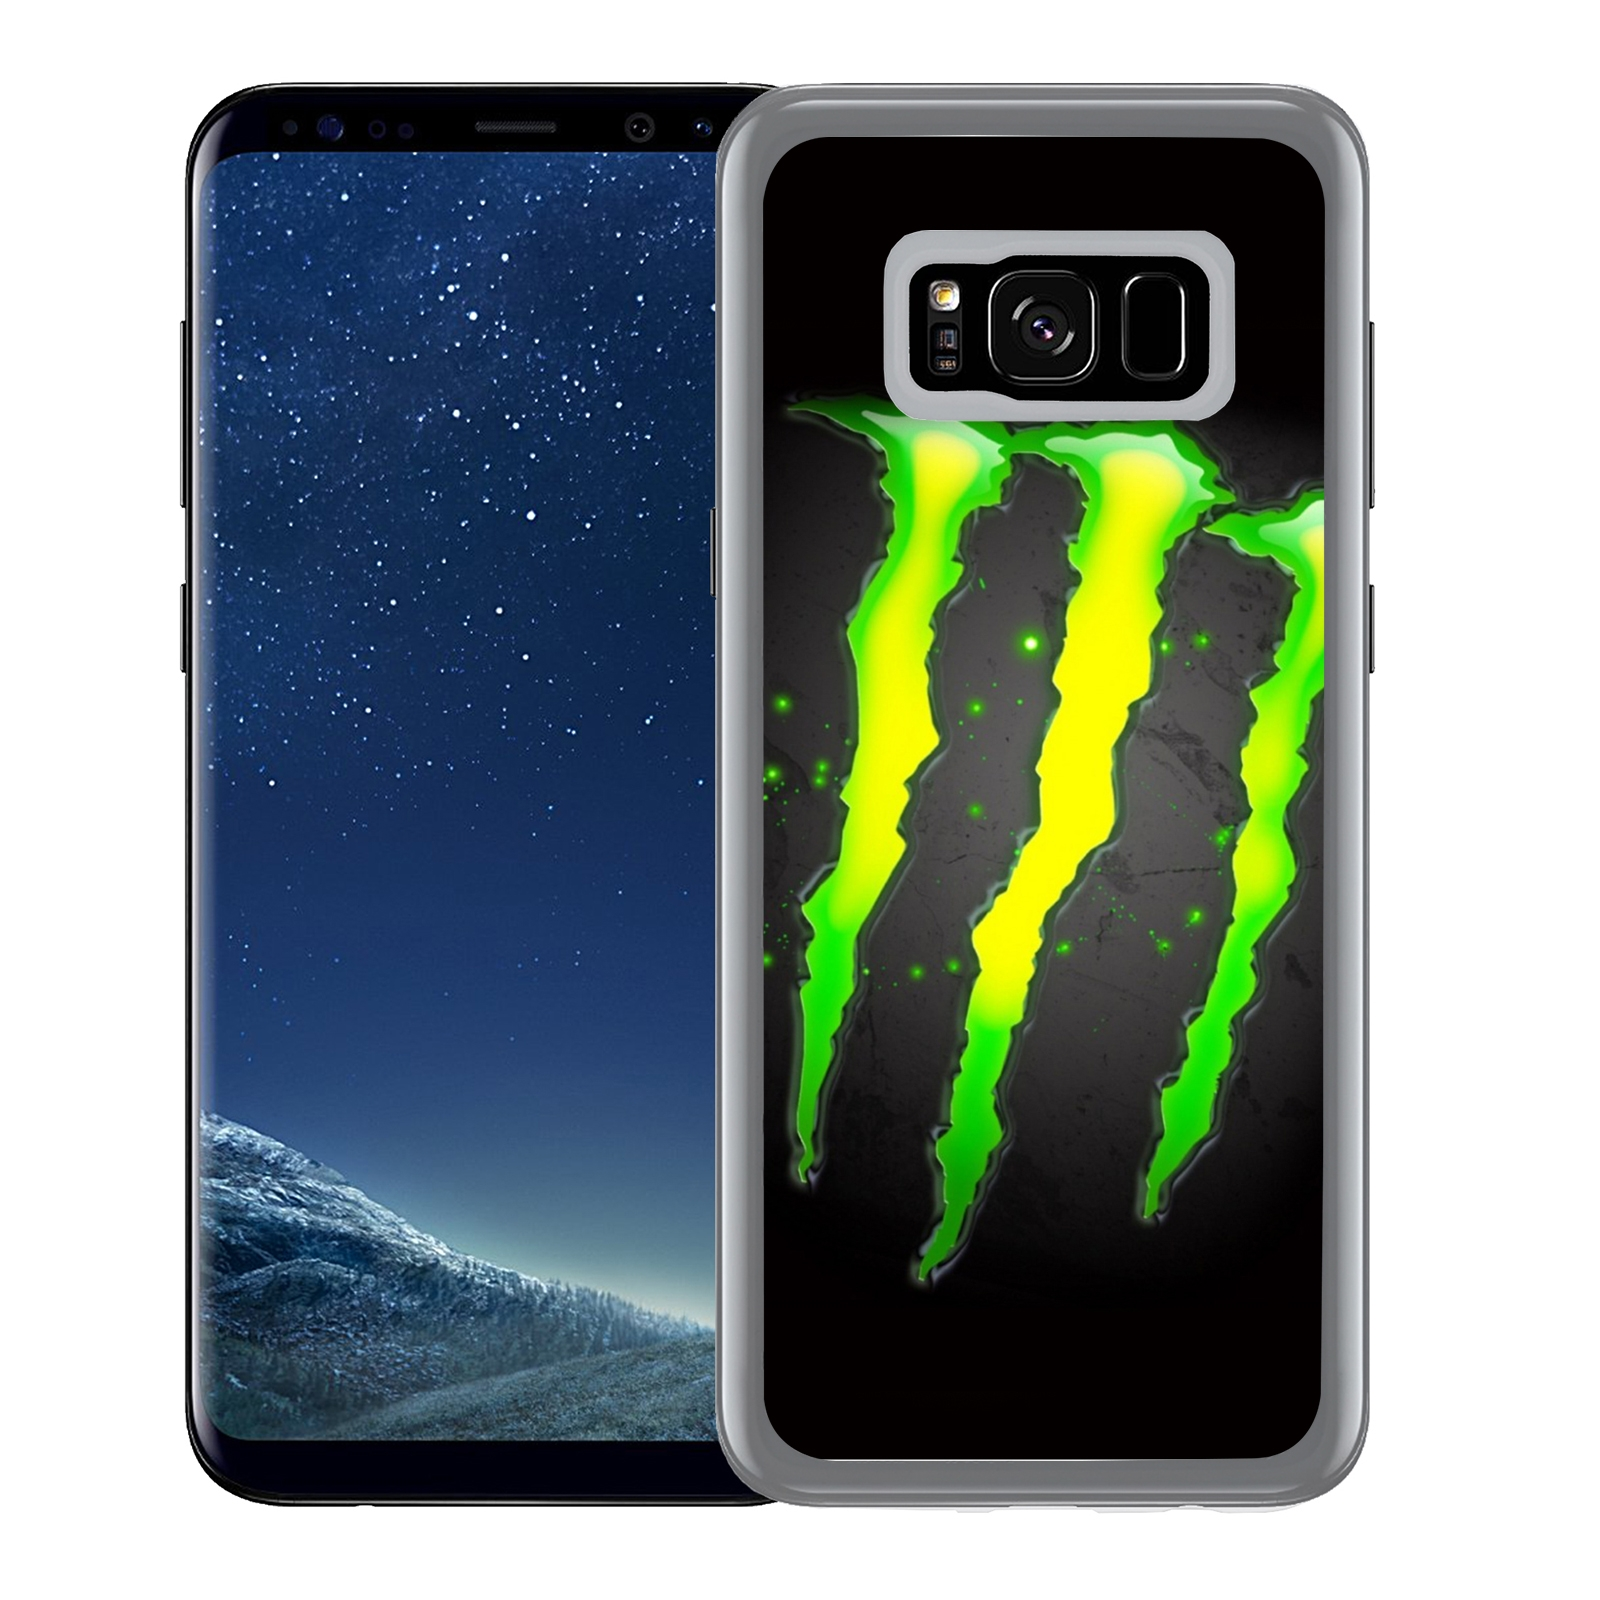 Coque pour Samsung Galaxy S8 Plus monster energy logo glow | Wish